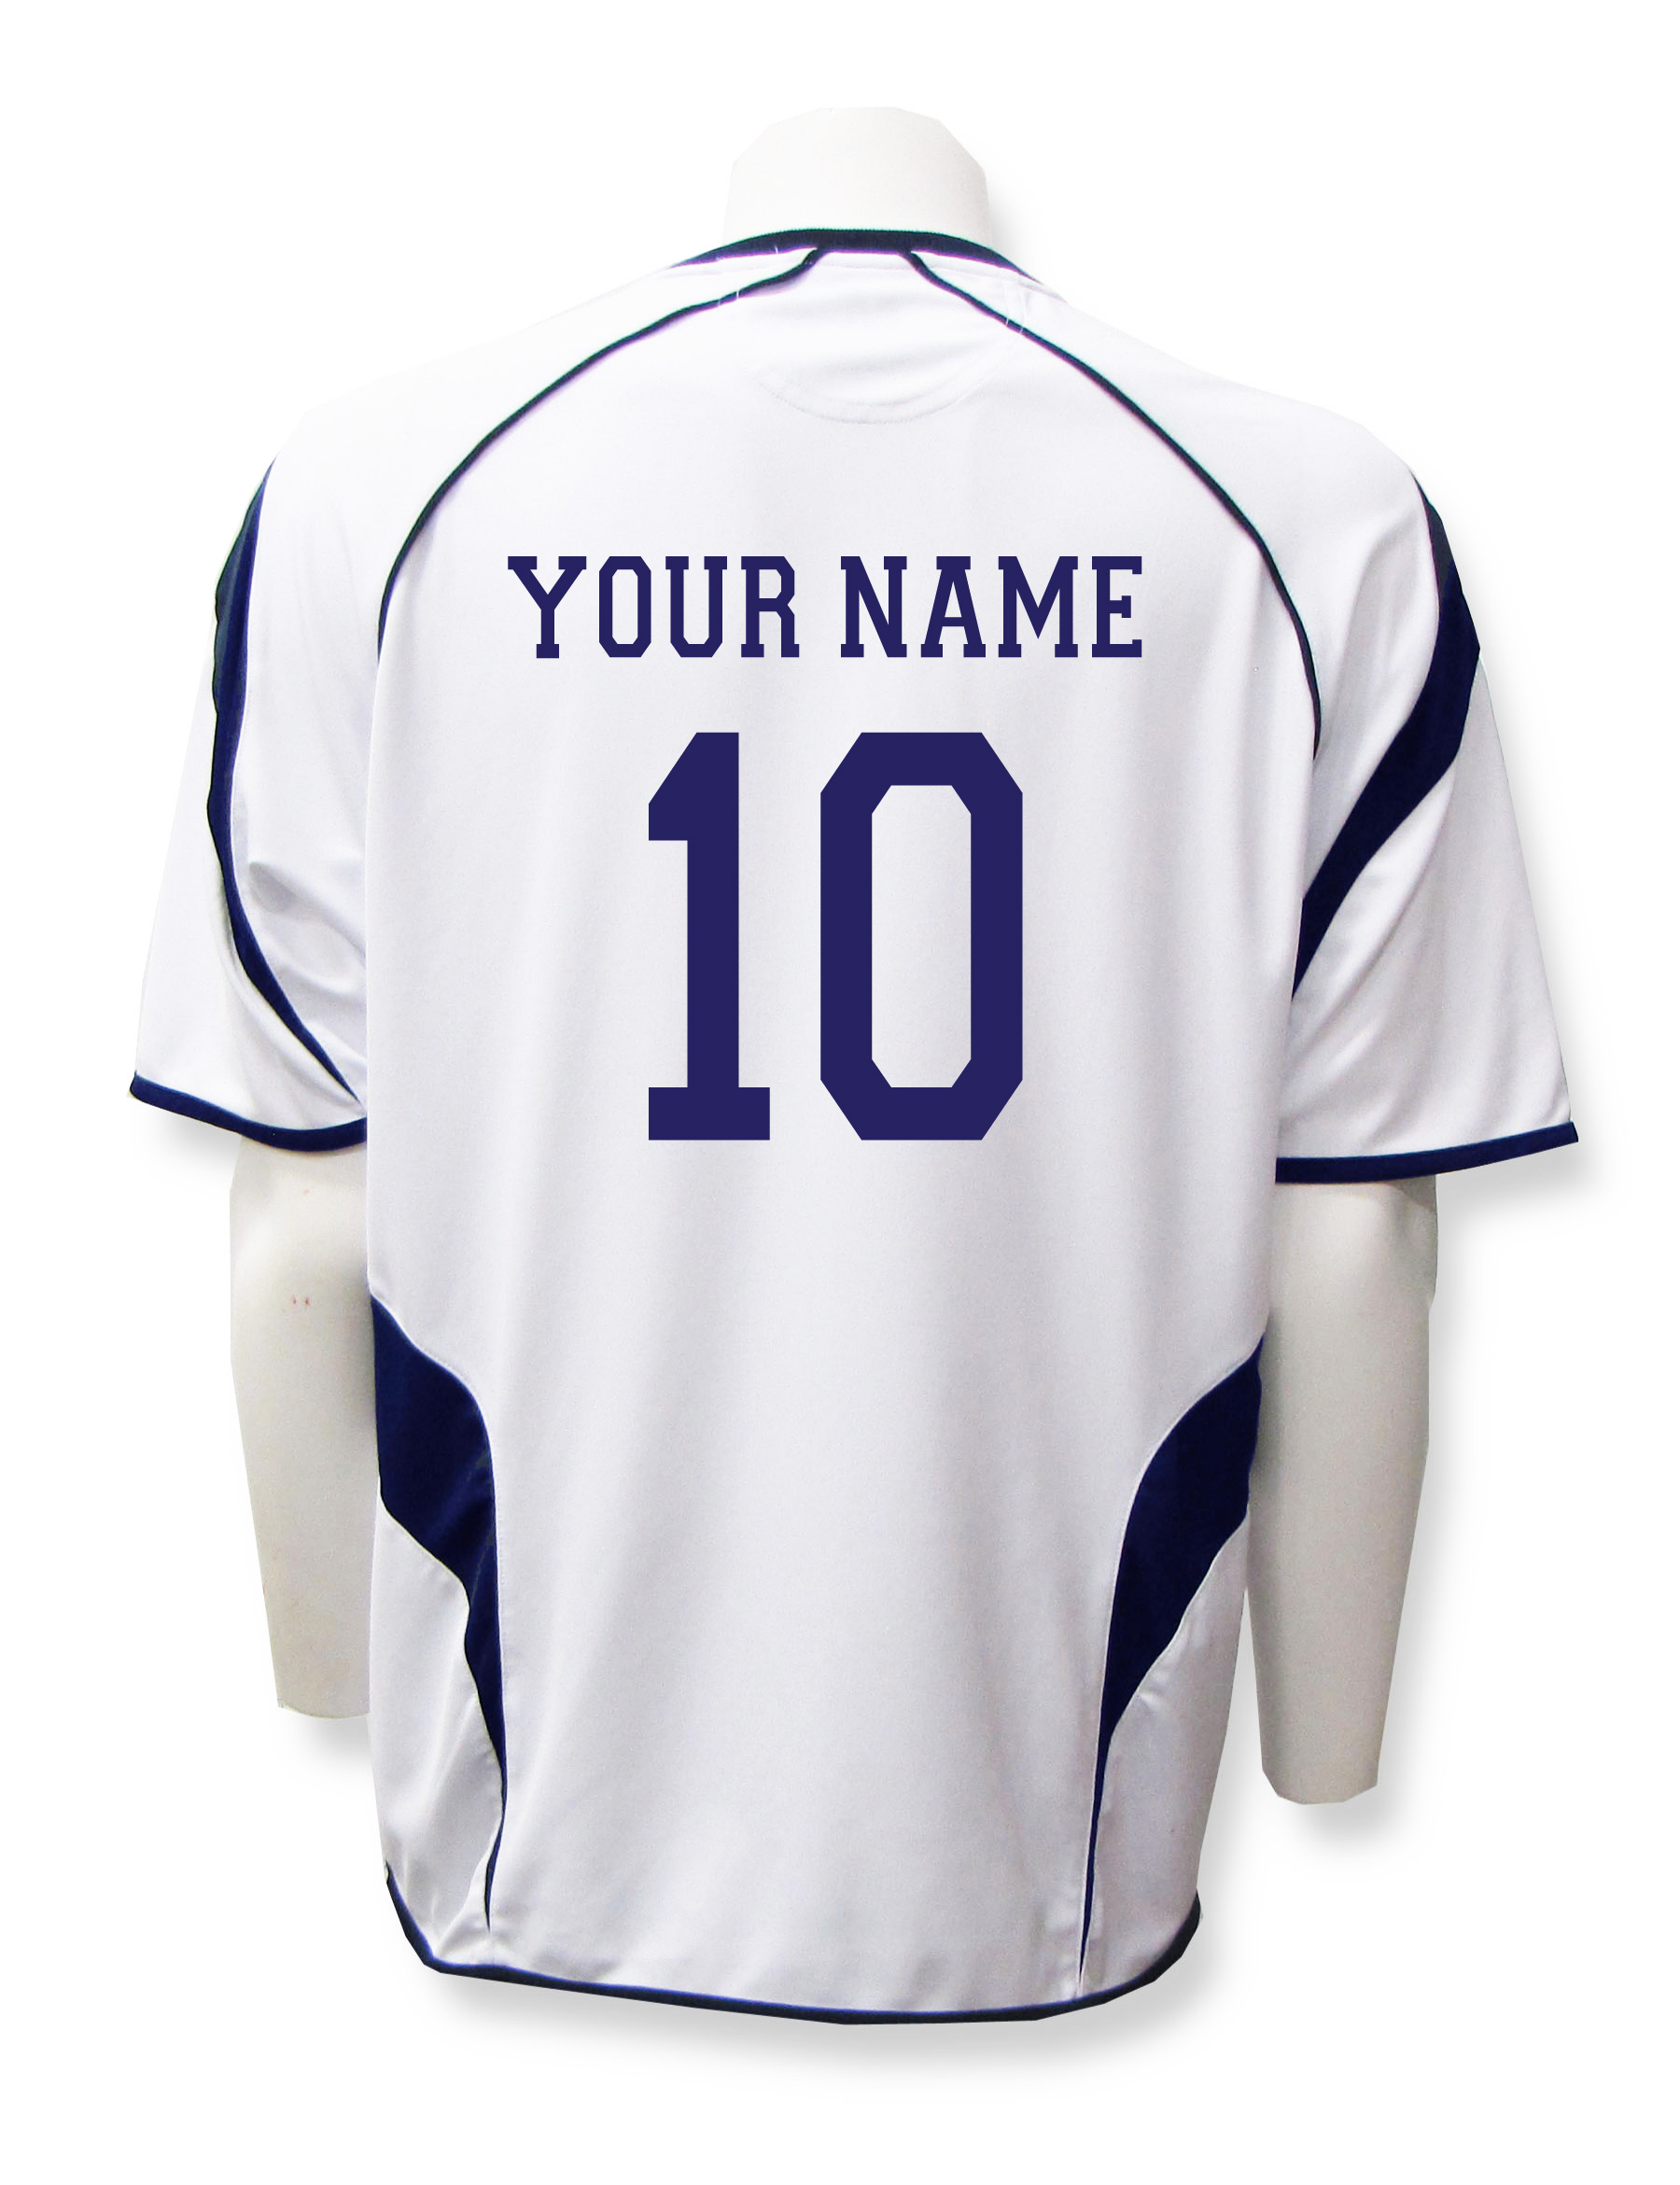 Velocity jersey back your name and number in navy/white